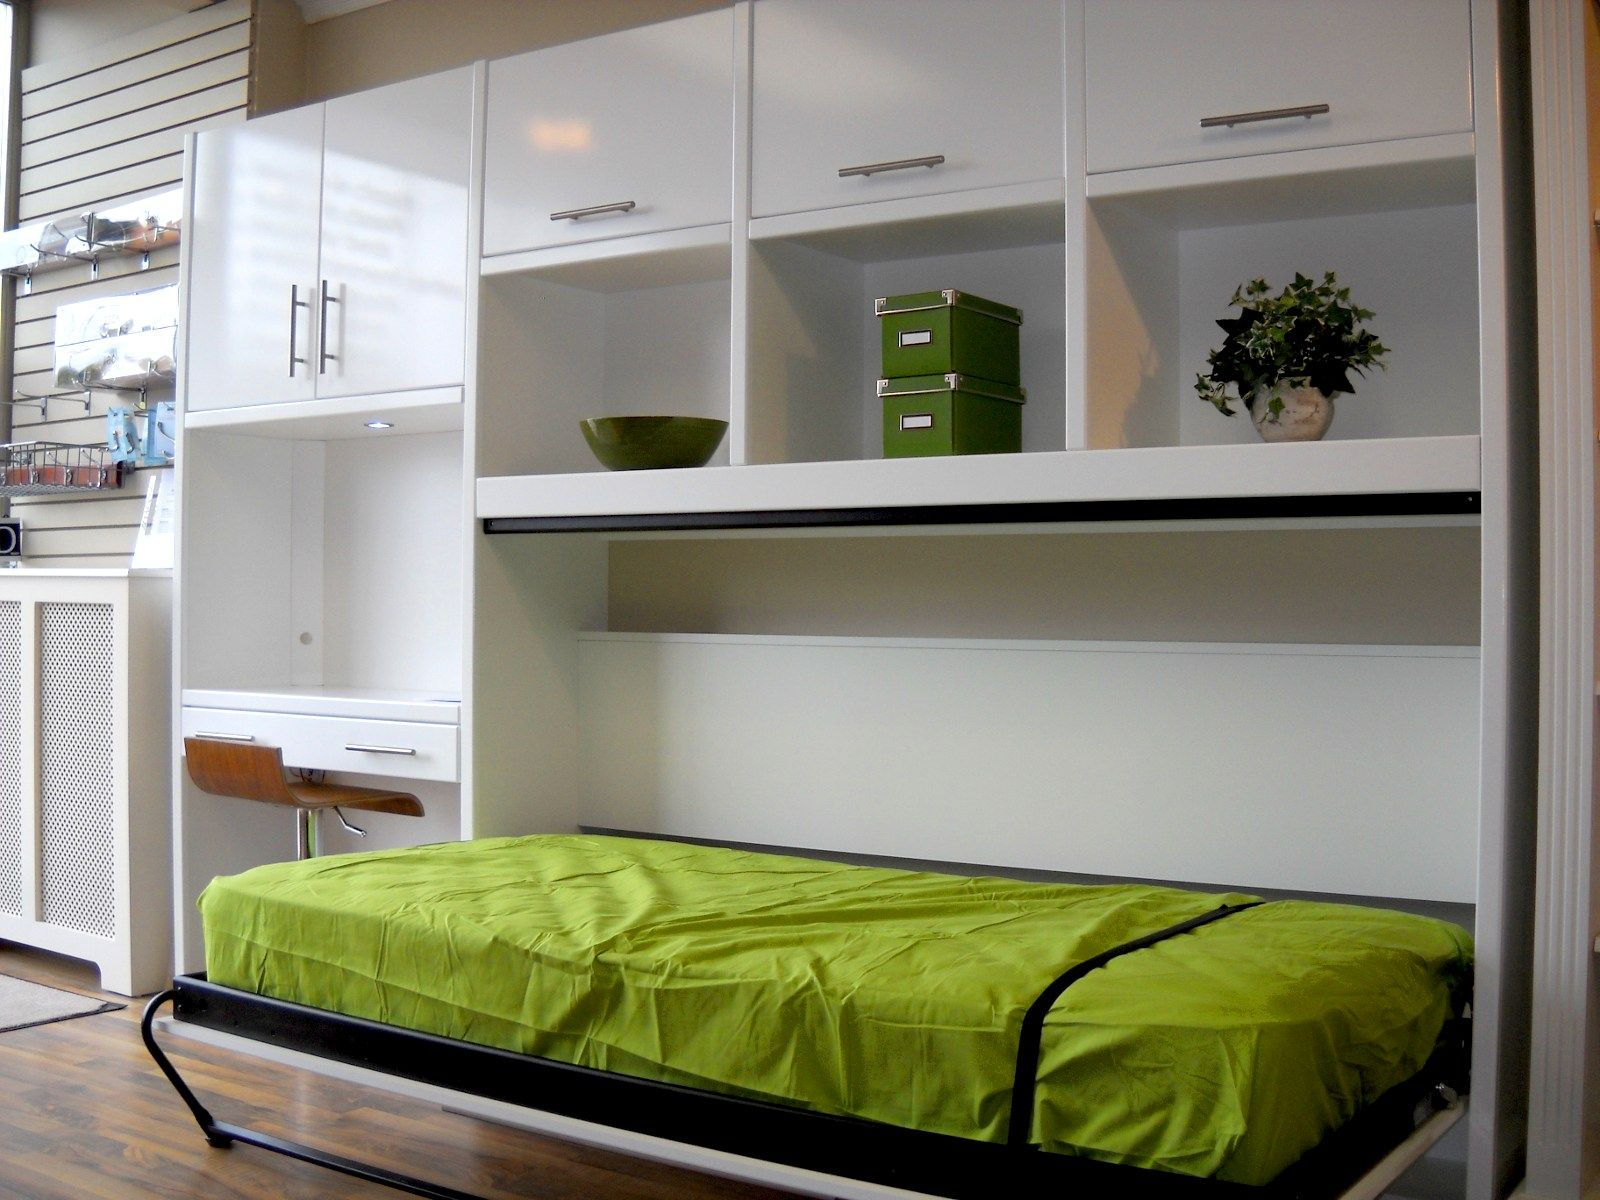 Furnituremodern modular shelving units design ideas with white bedroom cool green murphy bed on white cabinet feats decoration racks and white desk with brown leather chair fabulous murphy bed ikea design amipublicfo Gallery